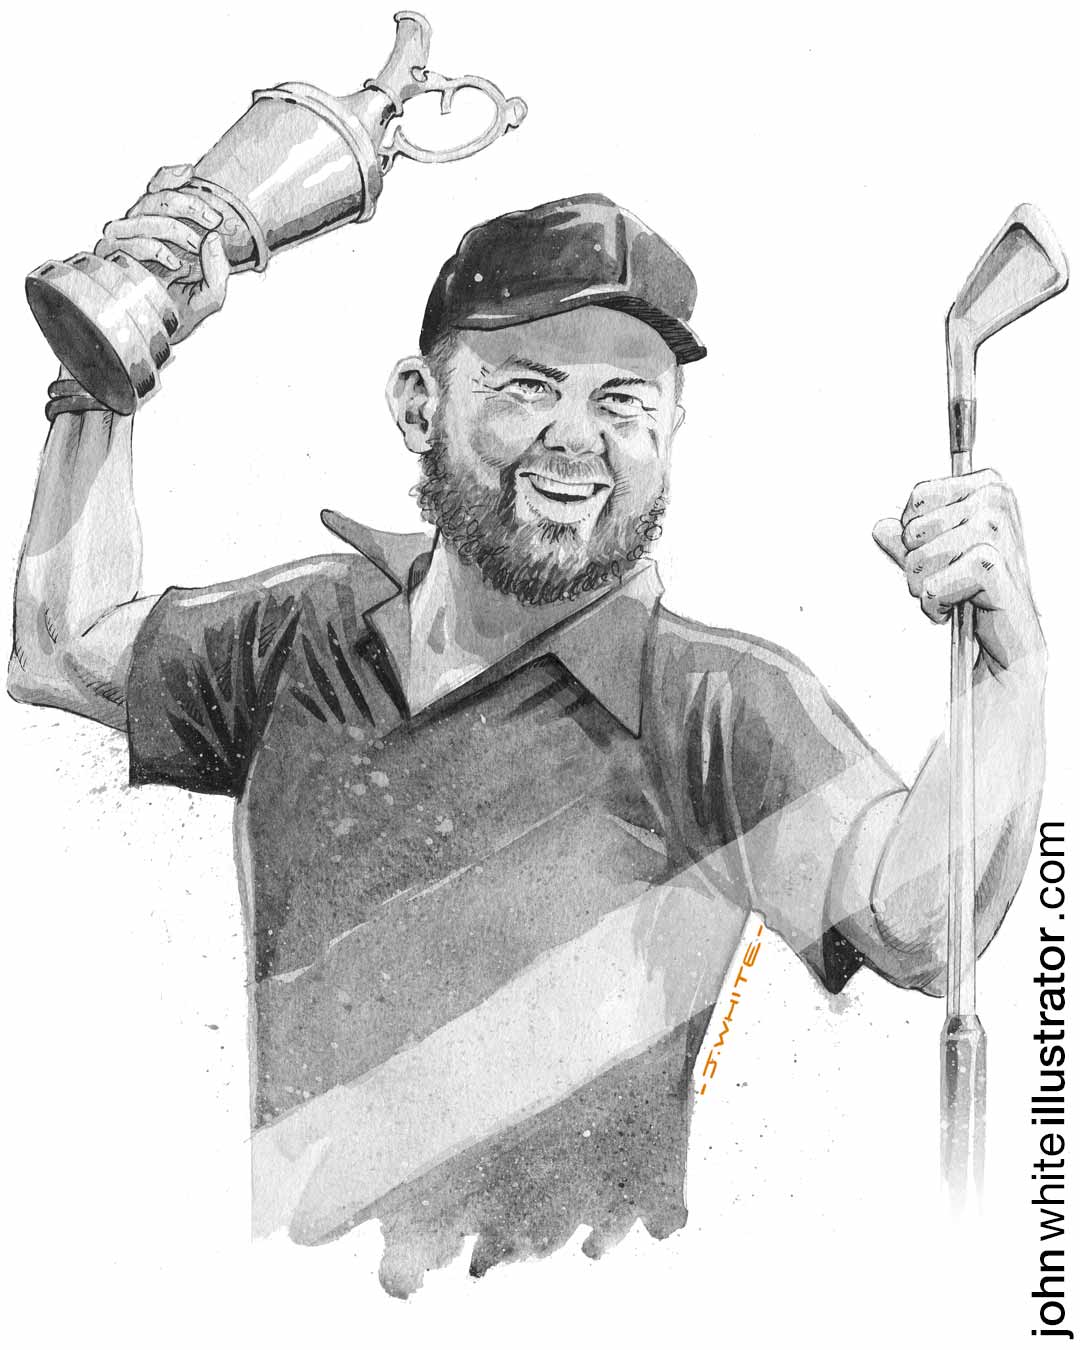 black and white editorial illustration of irish golfer shane lowry